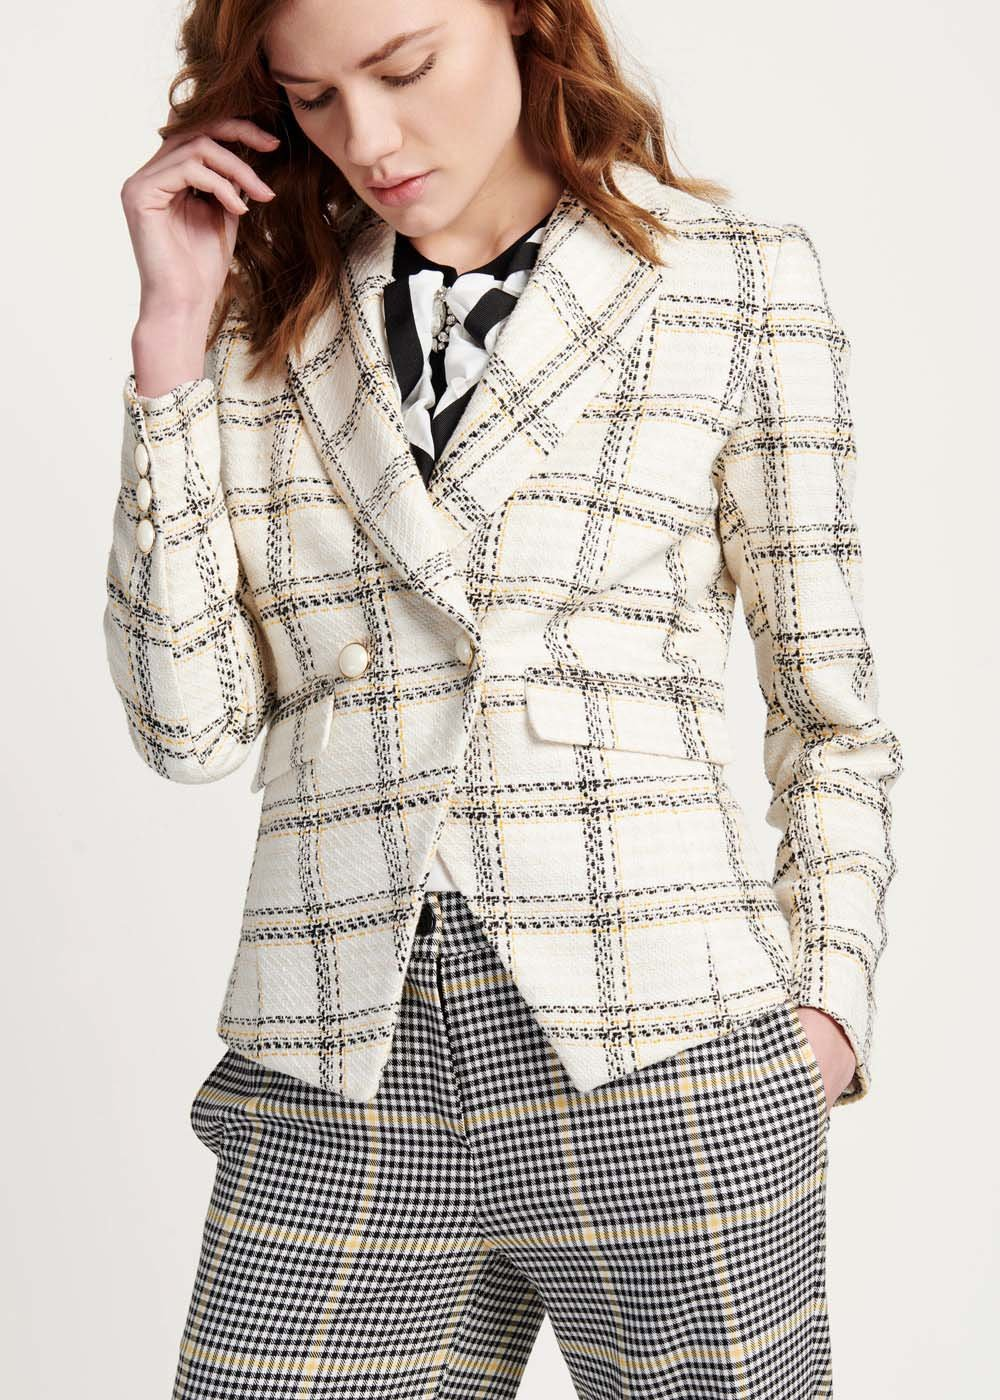 Giordy jacket in mixed checked fabric - White Black Fantasia - Woman